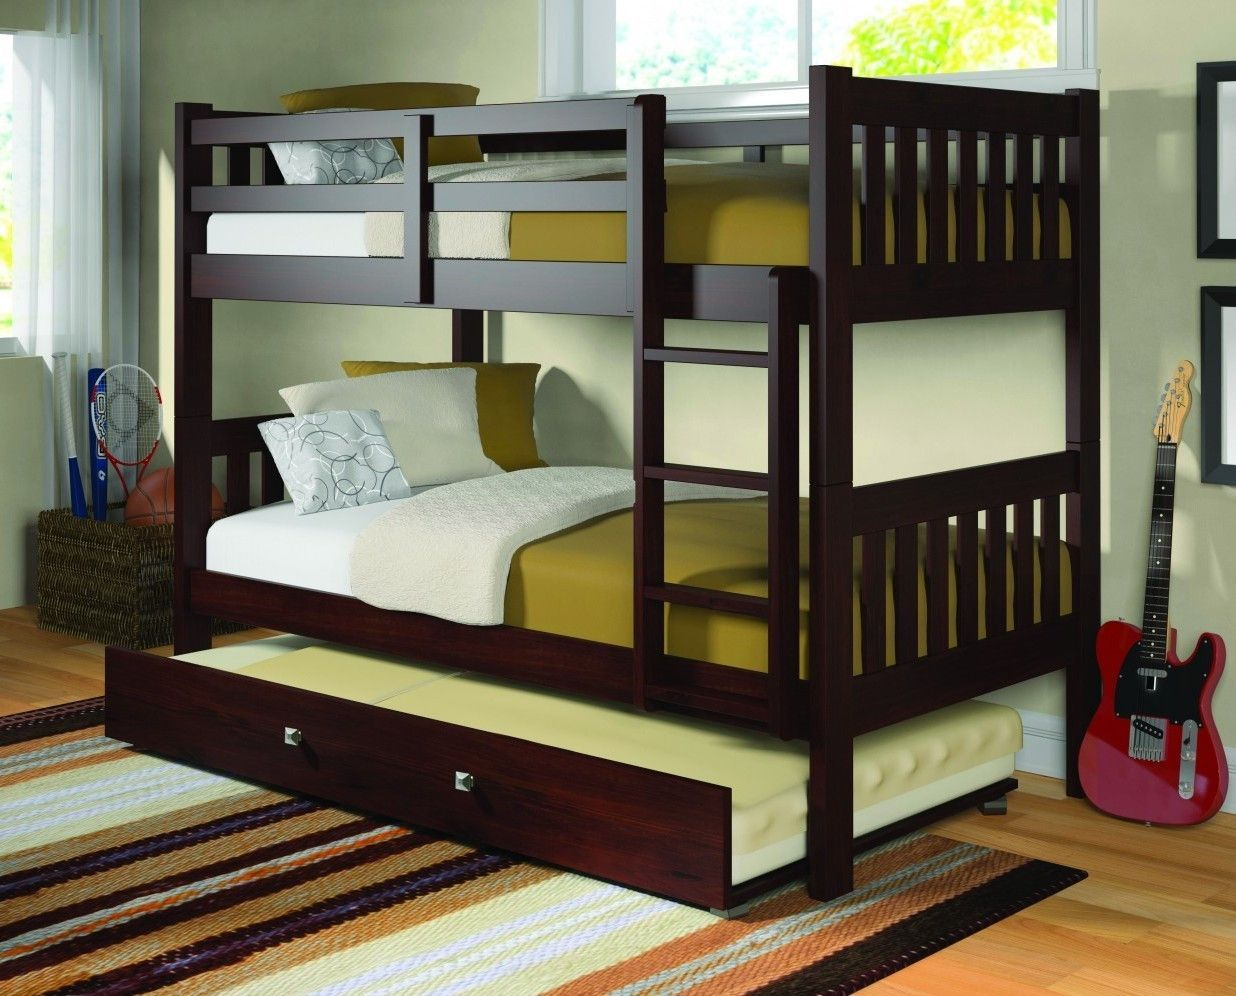 Two twin loft bed  Morgan Cappuccino Bunk Bed with Trundle  Bunk bed Kids furniture